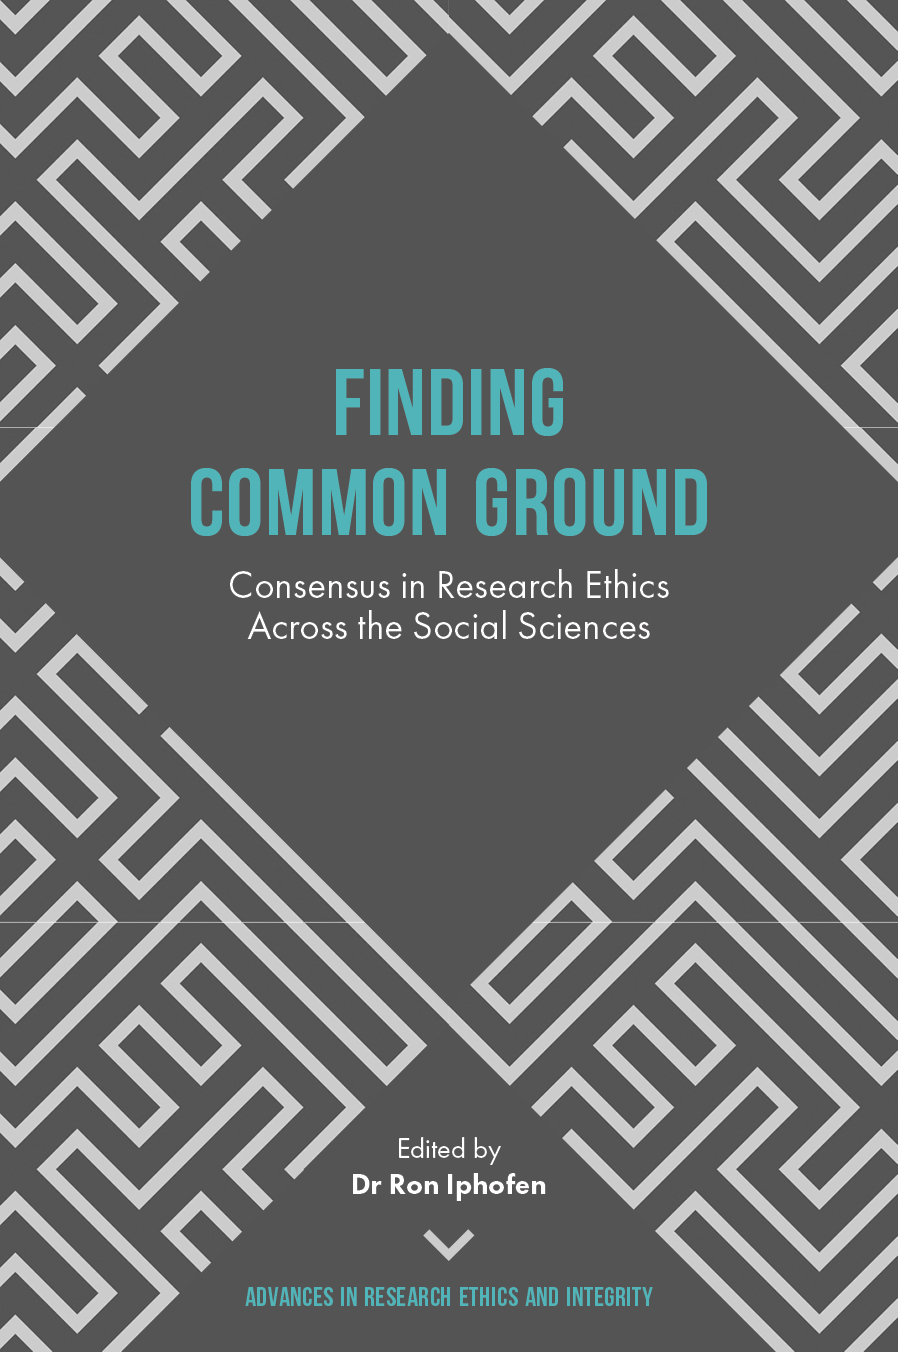 Book cover for Finding Common Ground:  Consensus in Research Ethics Across the Social Sciences a book by Ron  Iphofen